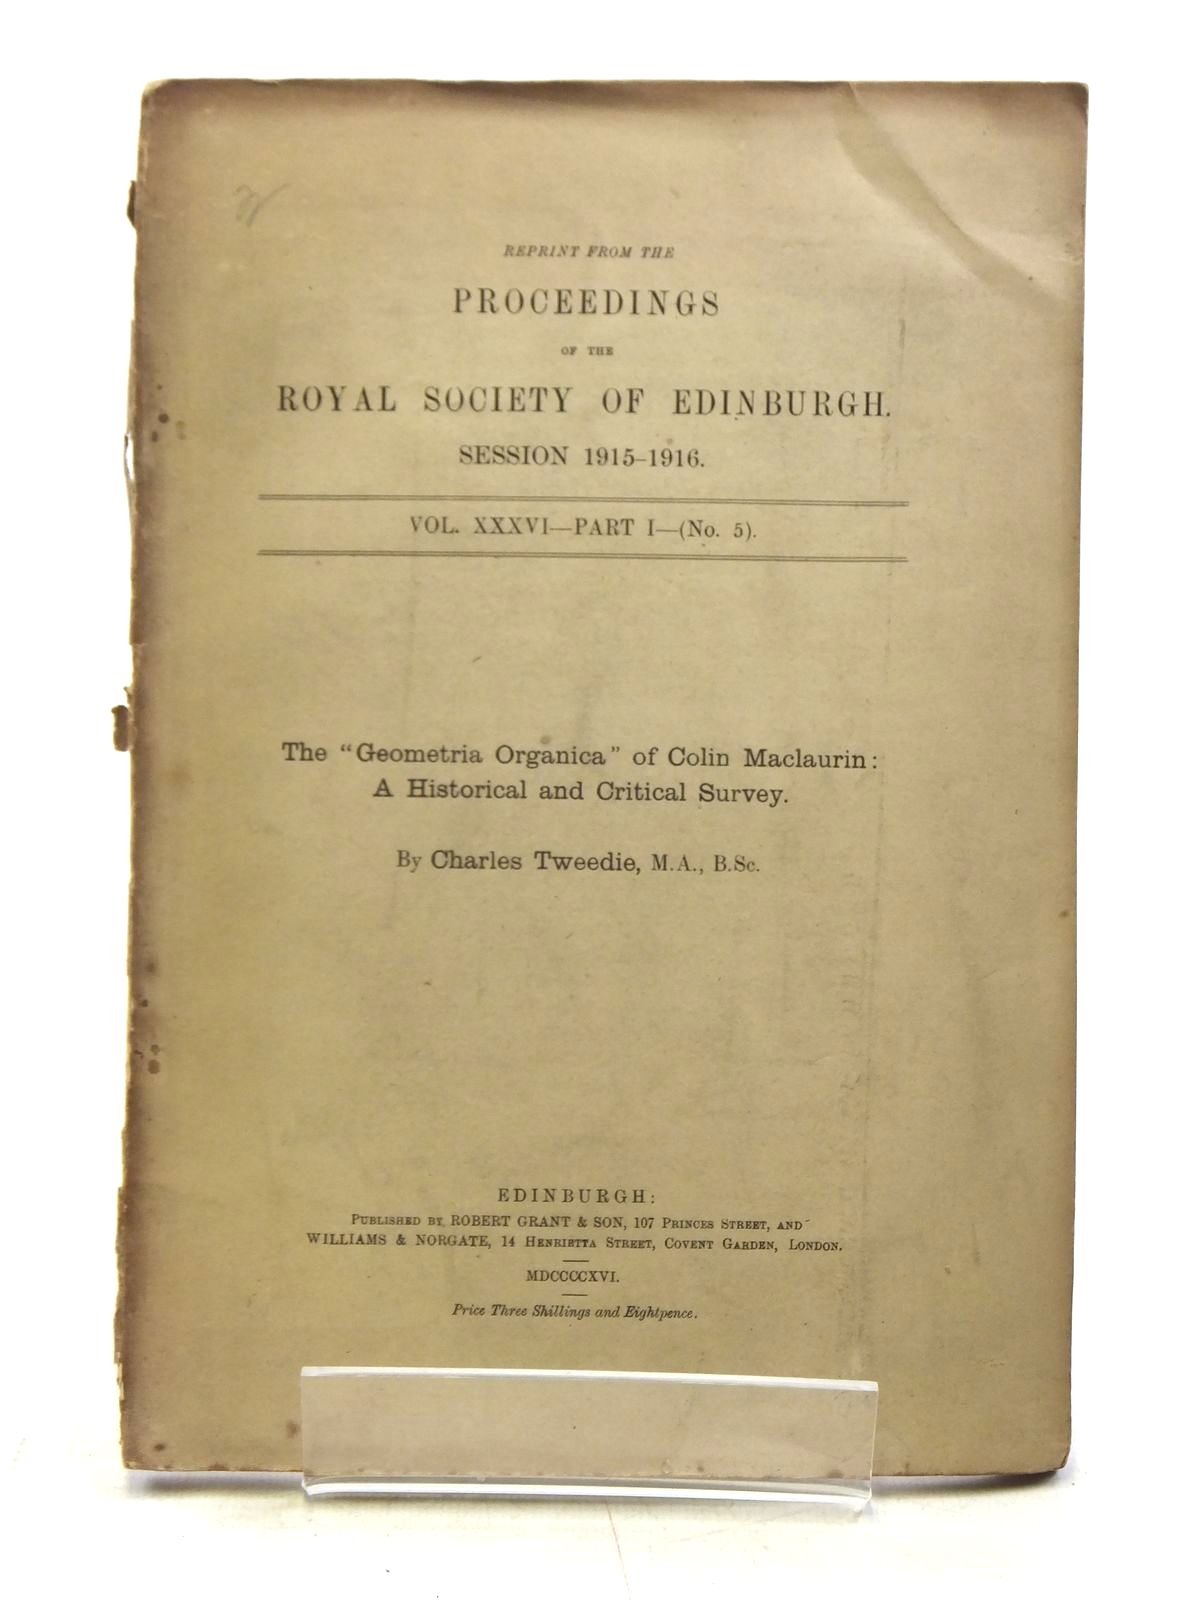 Photo of REPRINT FROM THE PROCEEDINGS OF THE ROYAL SOCIETY OF EDINBURGH, SESSION 1915-1916 VOL. XXXVI - PART I - No. 5 written by Tweedie, Charles published by Robert Grant & Son (STOCK CODE: 2120018)  for sale by Stella & Rose's Books